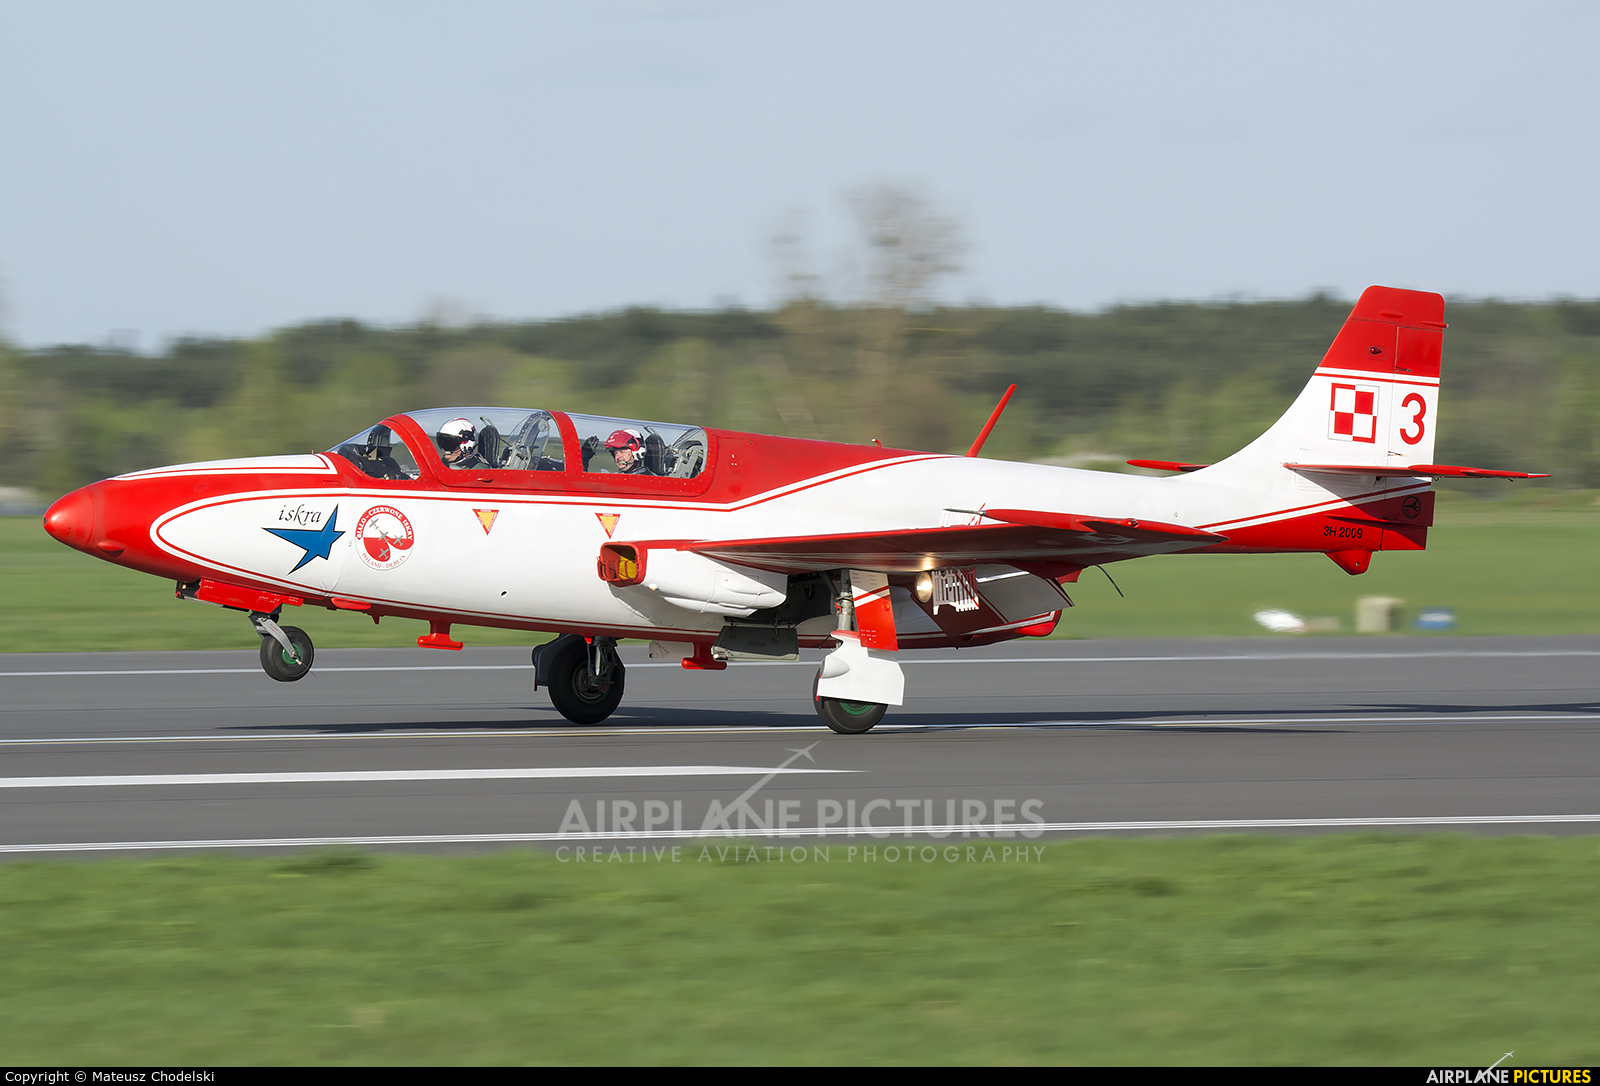 Poland - Air Force: White & Red Iskras 3 aircraft at Dęblin